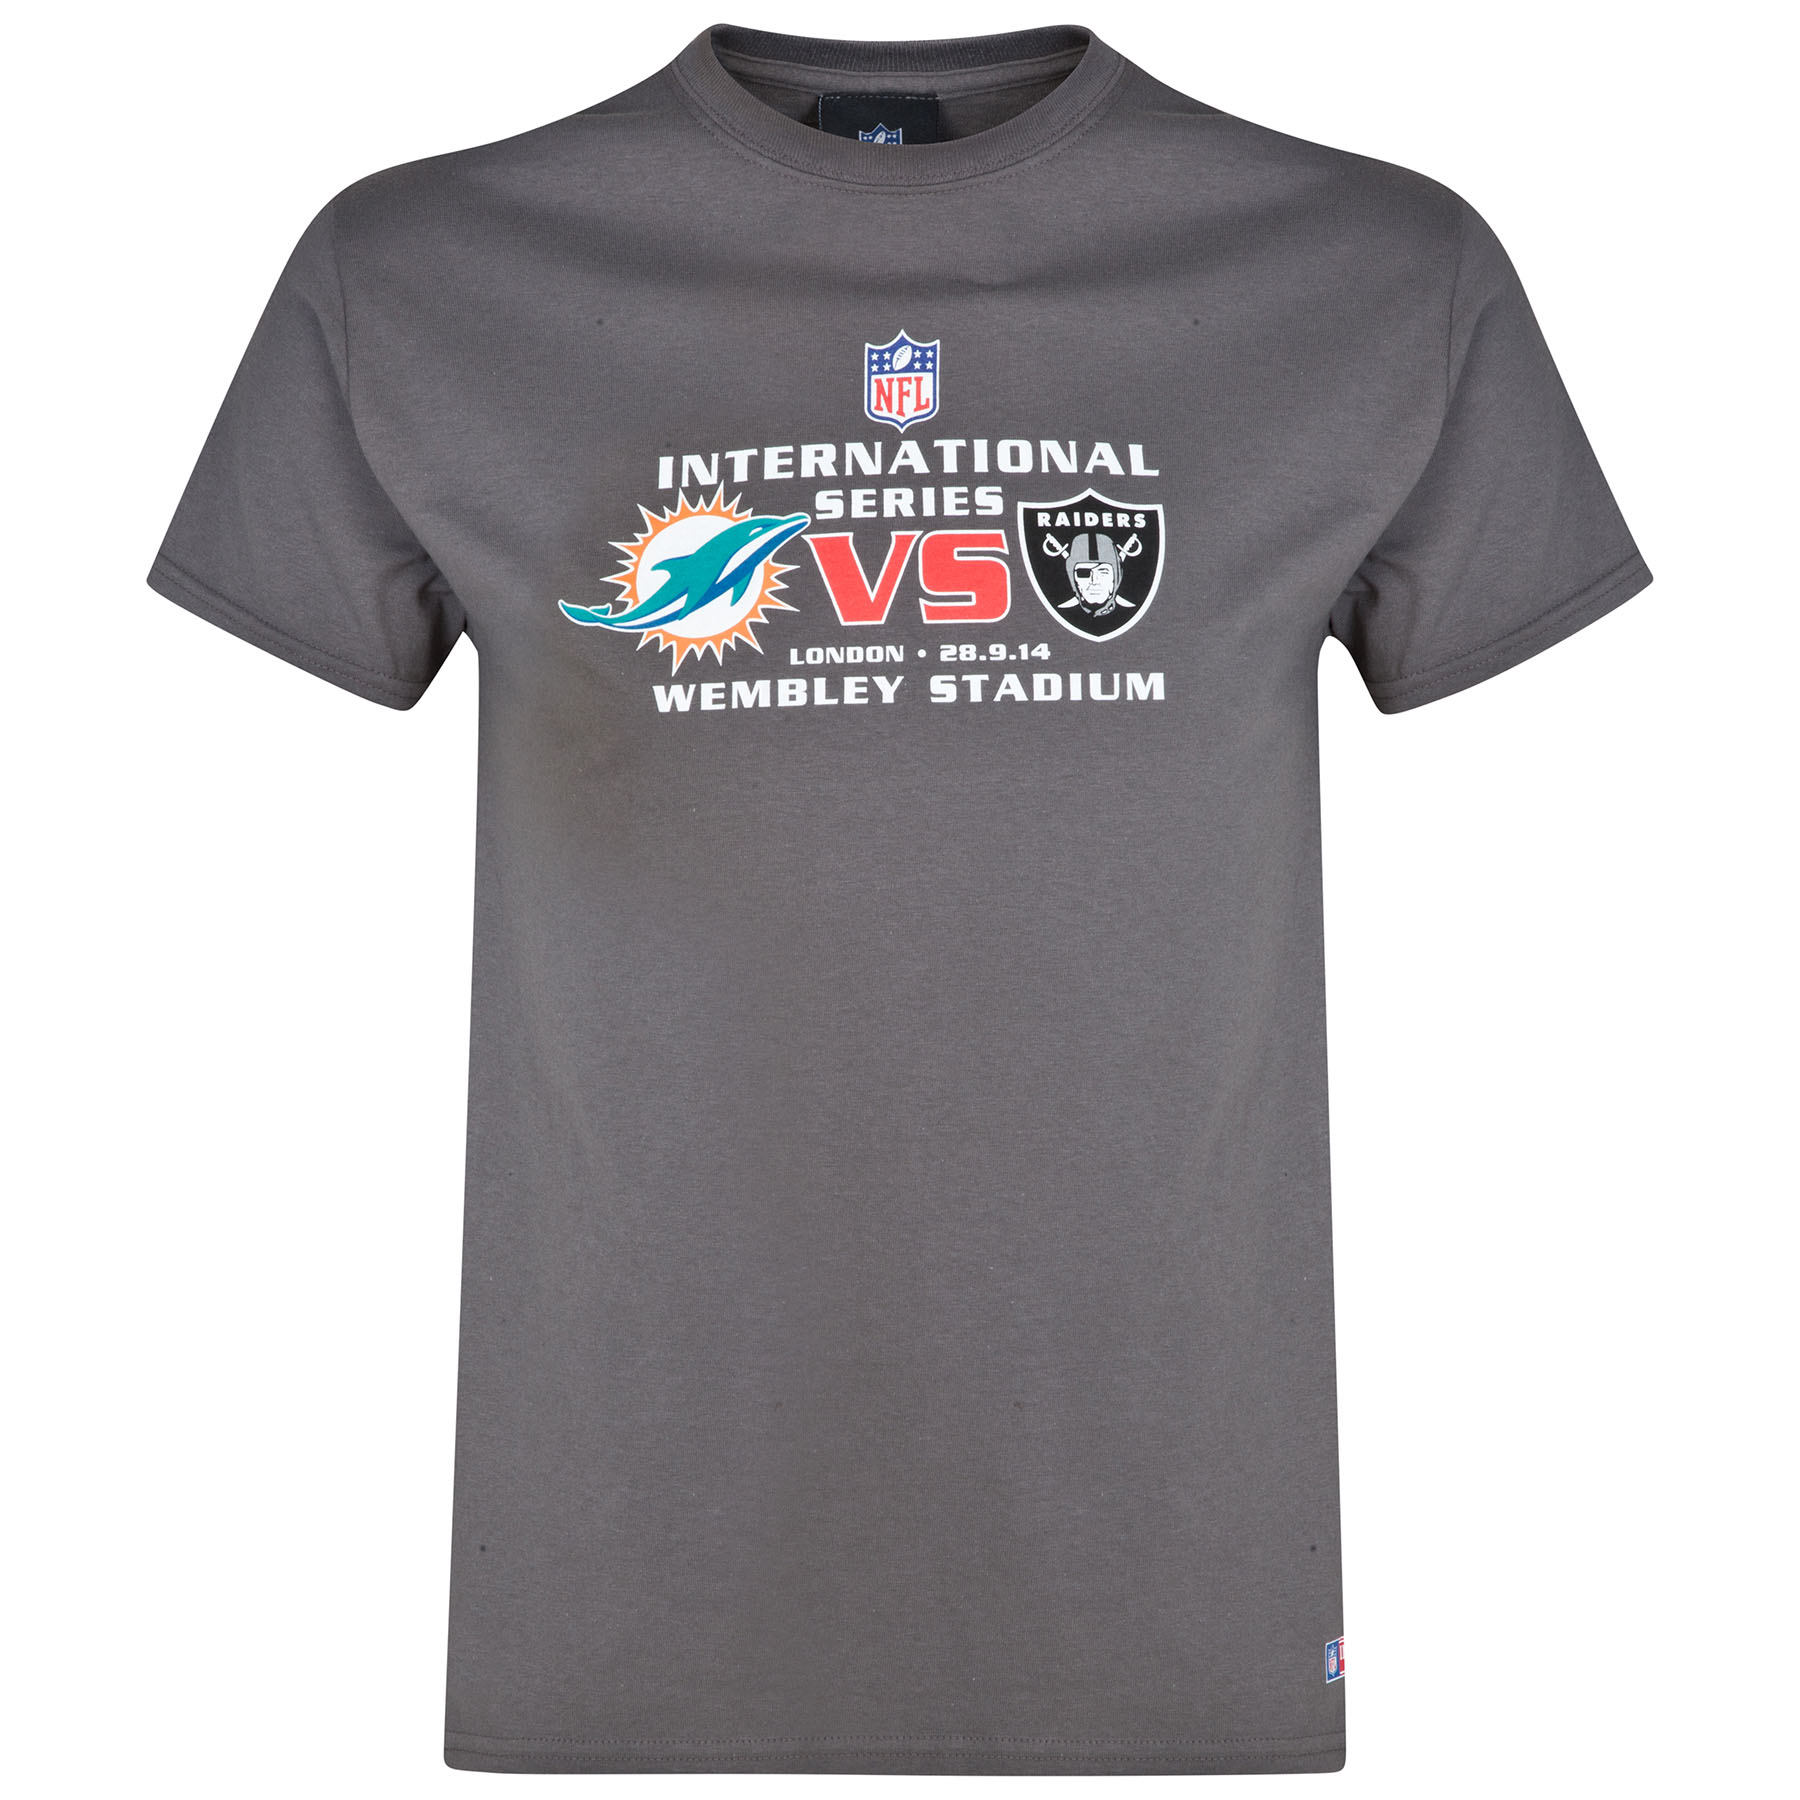 NFL International Series Dolphins VS Raiders 2014 Event T-Shirt